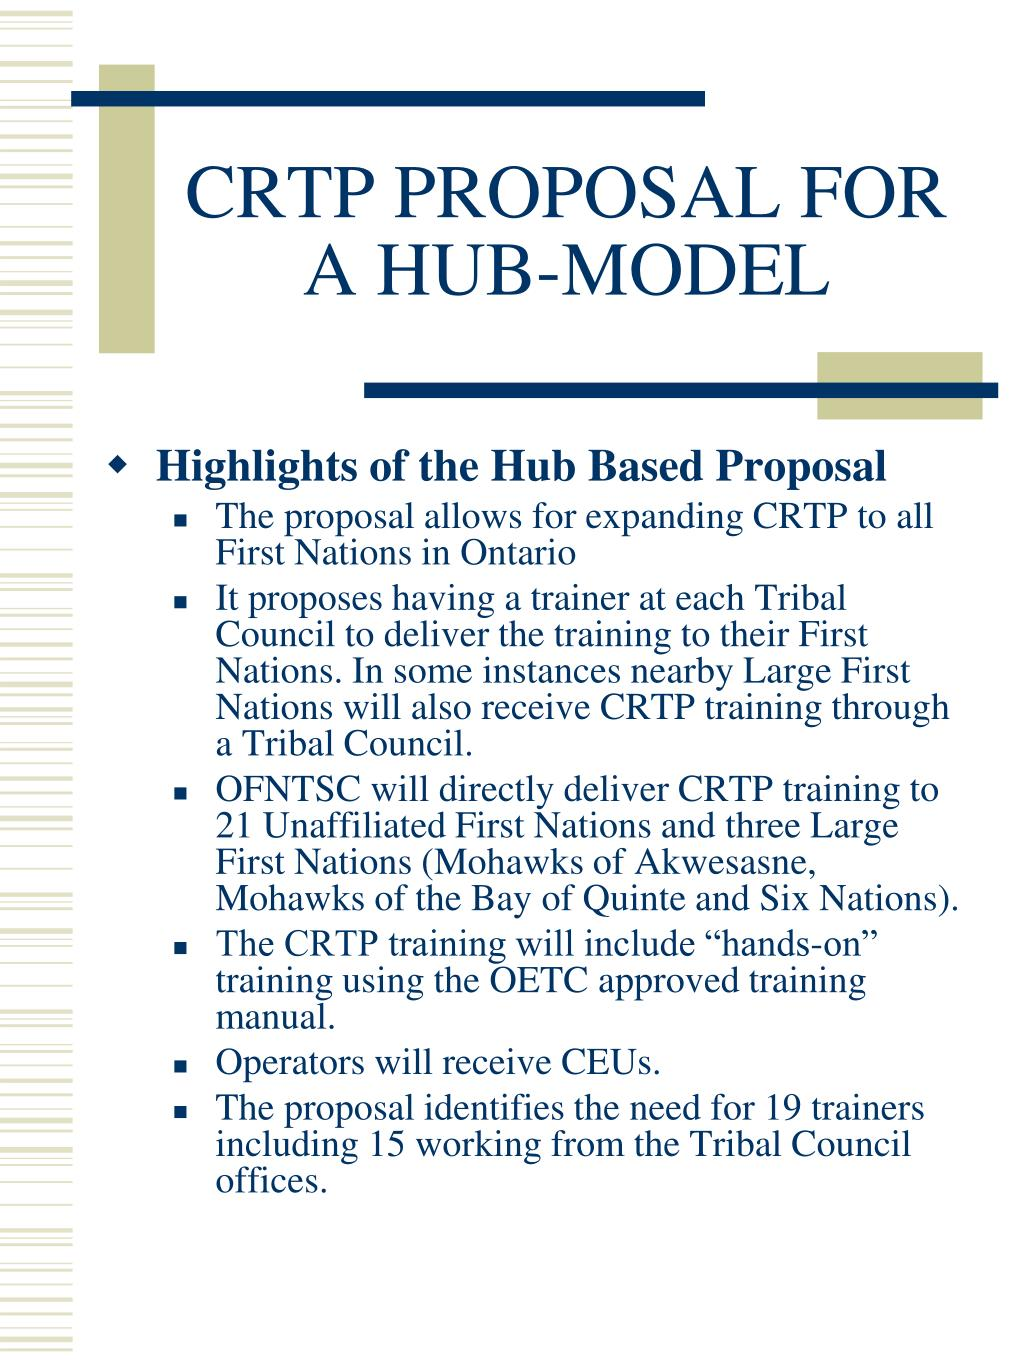 CRTP PROPOSAL FOR A HUB-MODEL